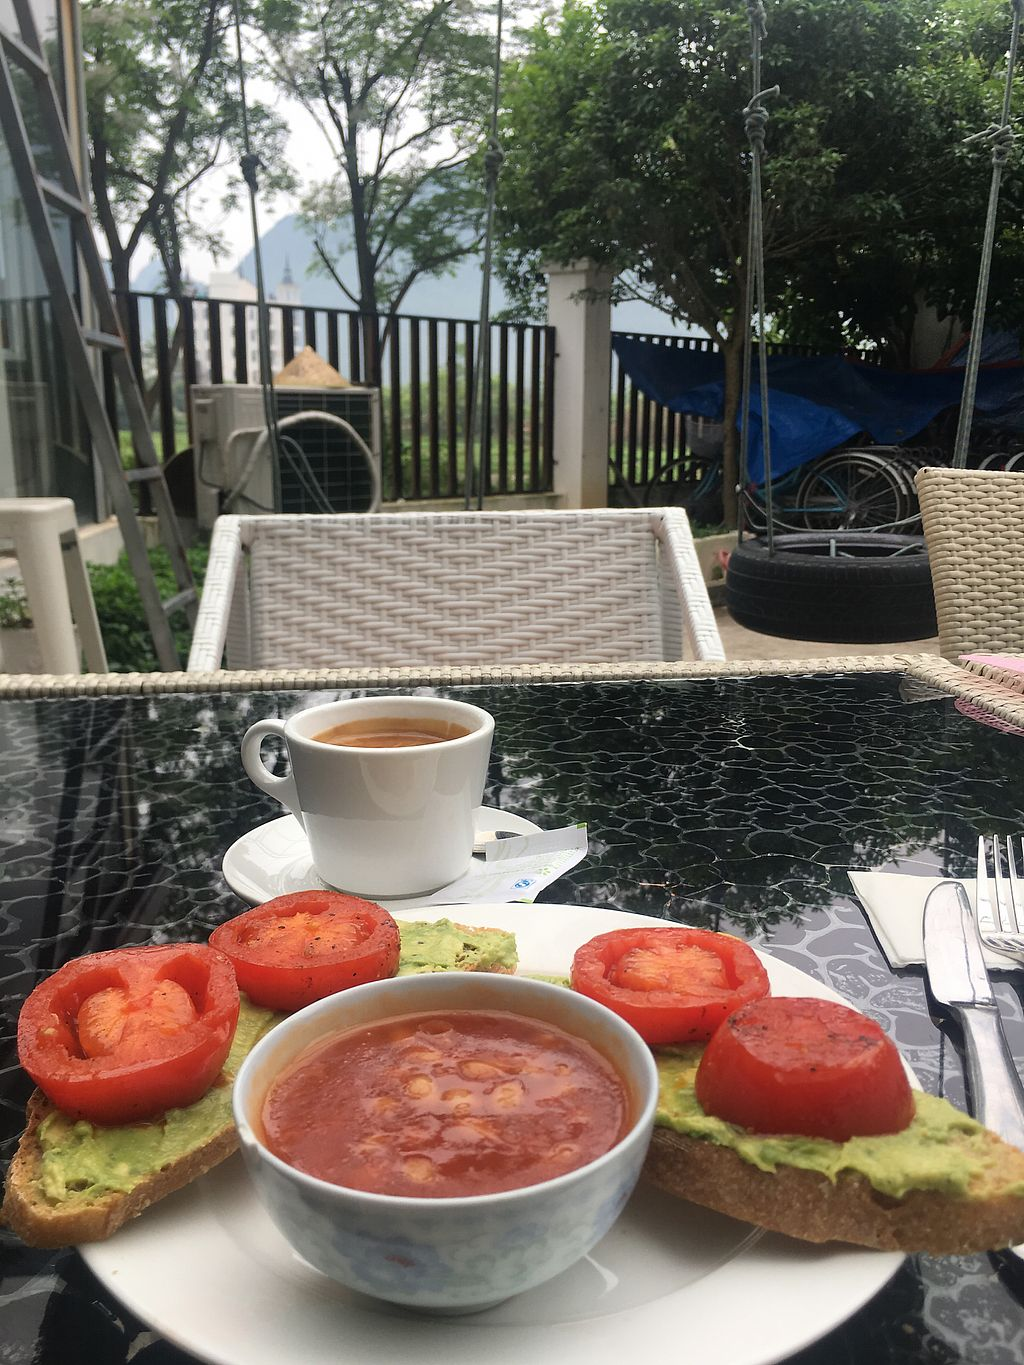 """Photo of The Organic Garden  by <a href=""""/members/profile/BaileyGranstrom"""">BaileyGranstrom</a> <br/>Avocado toast and americano breaky!  <br/> April 12, 2018  - <a href='/contact/abuse/image/117315/384425'>Report</a>"""